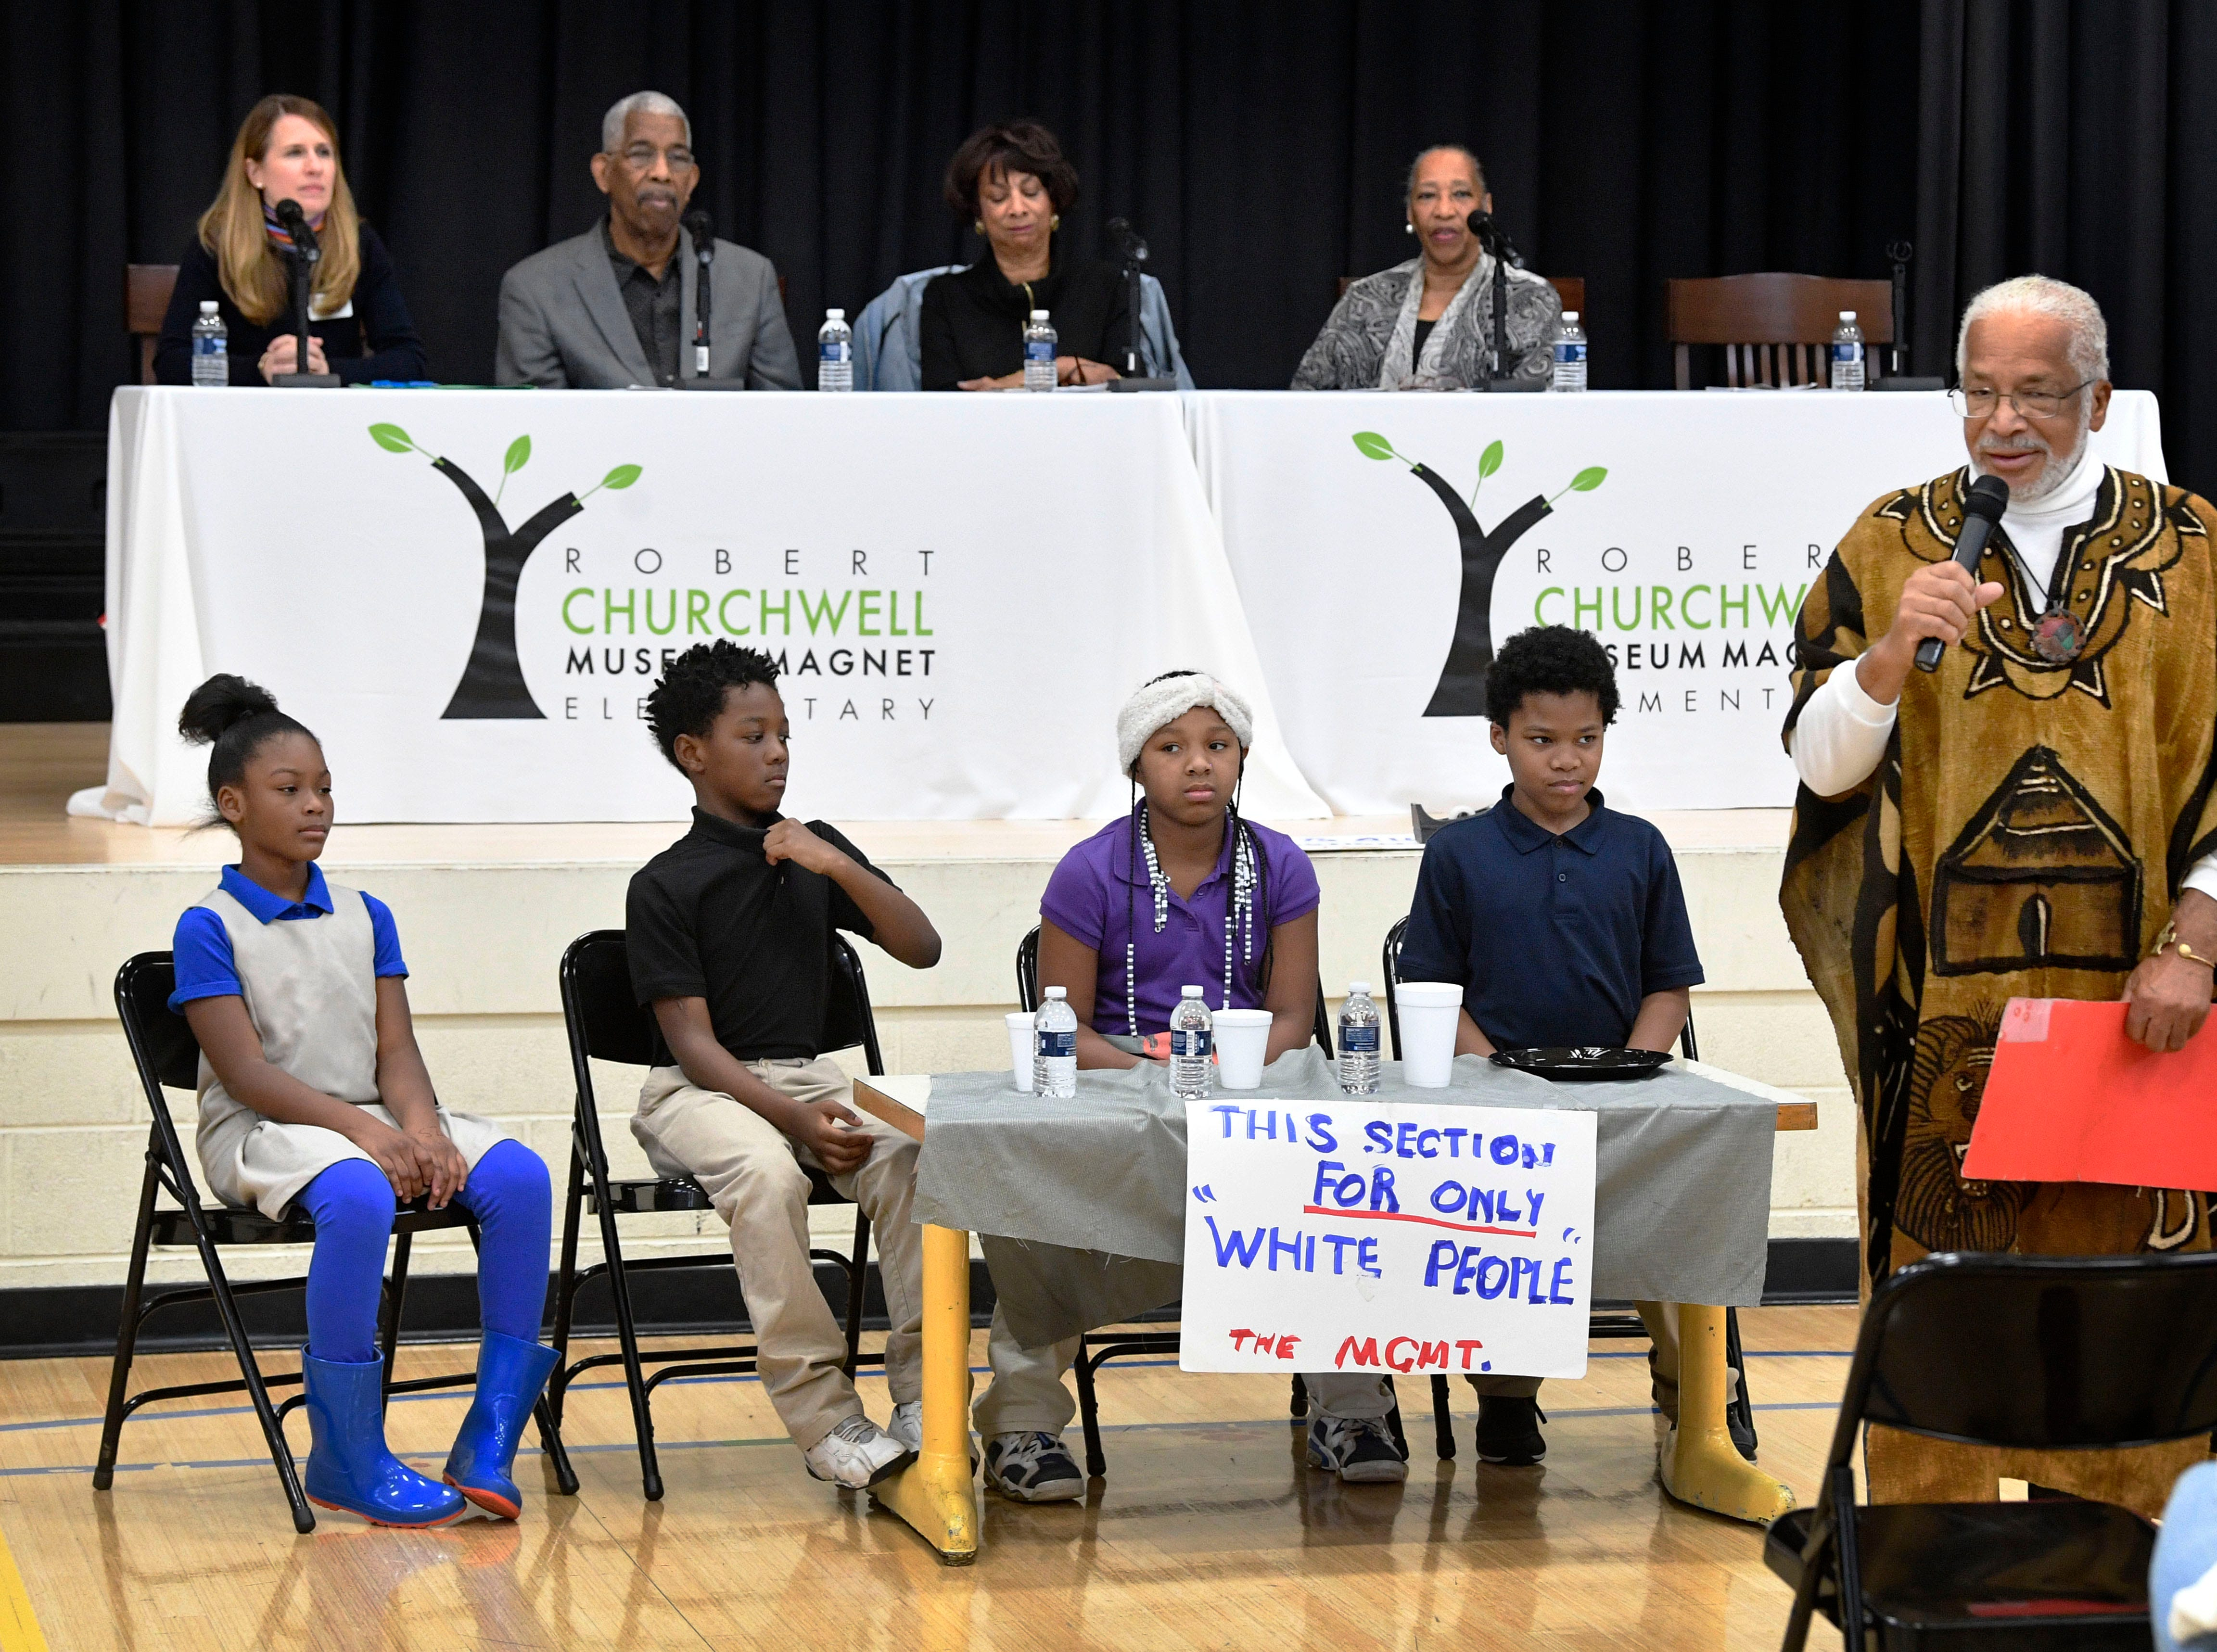 "Kwame Lillard took students ""back in time to the 1960 lunch counters"" during a presentation as part of the Frist Art Museum's ""We Shall Overcome"" exhibition opening at the Robert Churchwell Museum Magnet School. To celebrate its opening, the school hosted an assembly that featured remarks by the principal and a conversation with several participants, including Lajuanda Street Harley, Kwame Lillard, Rip Patton, and Gloria McKissack.  Friday Nov. 30, 2018, in Nashville, Tenn."